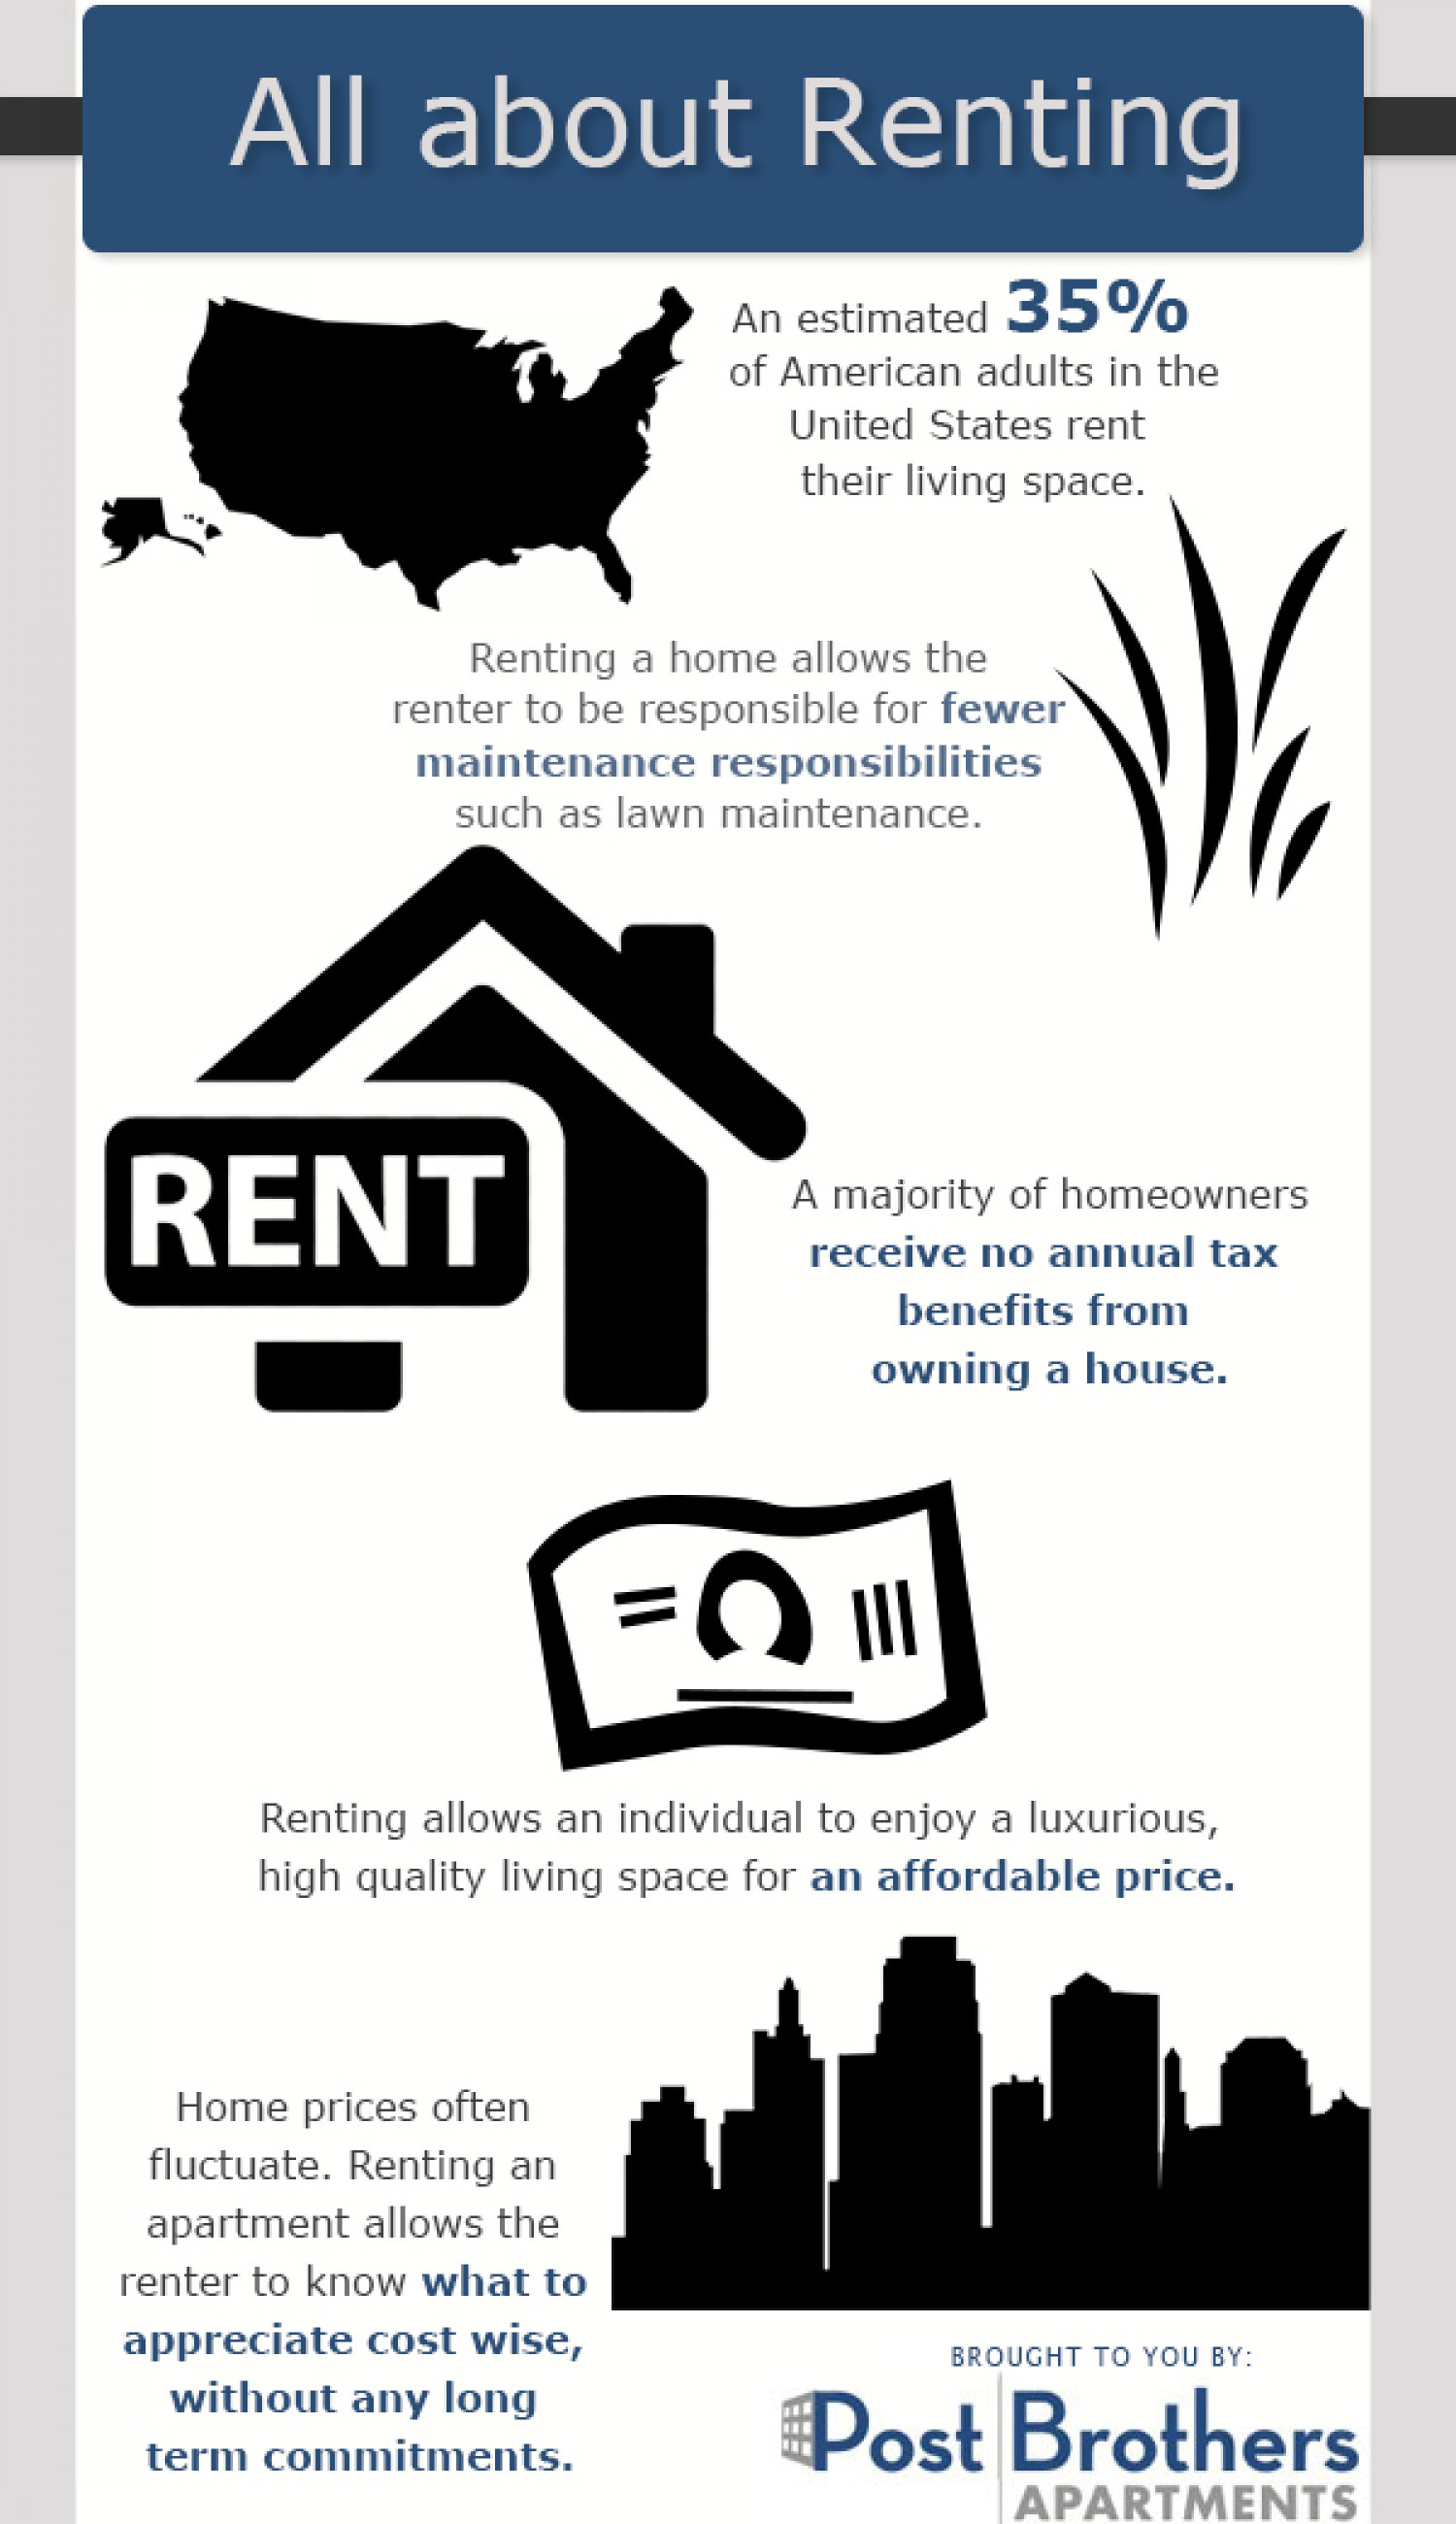 All About Renting Infographic